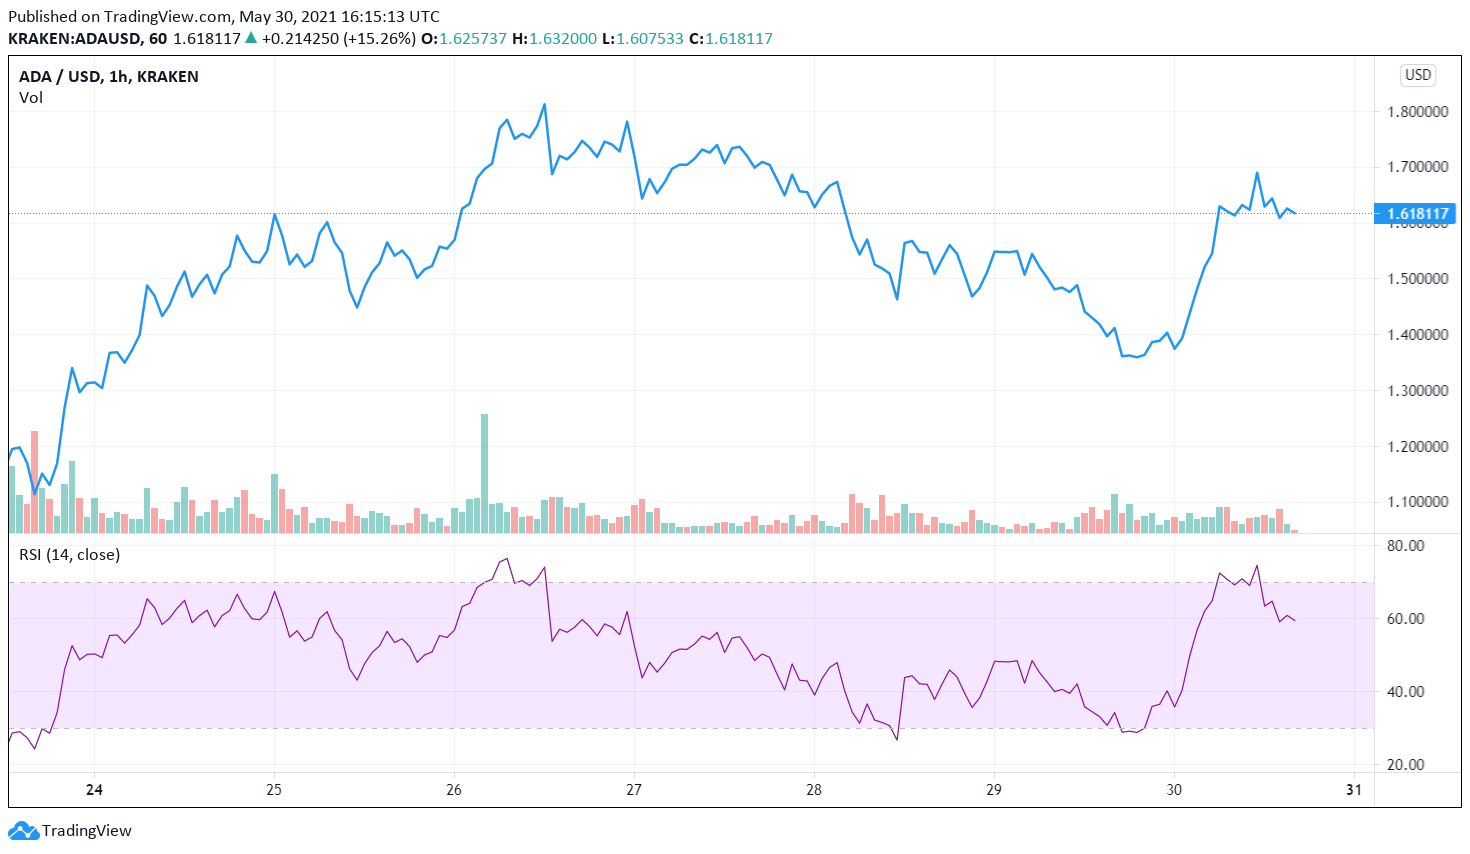 Cardano leads tepid crypto market recovery ahead of Memorial Day